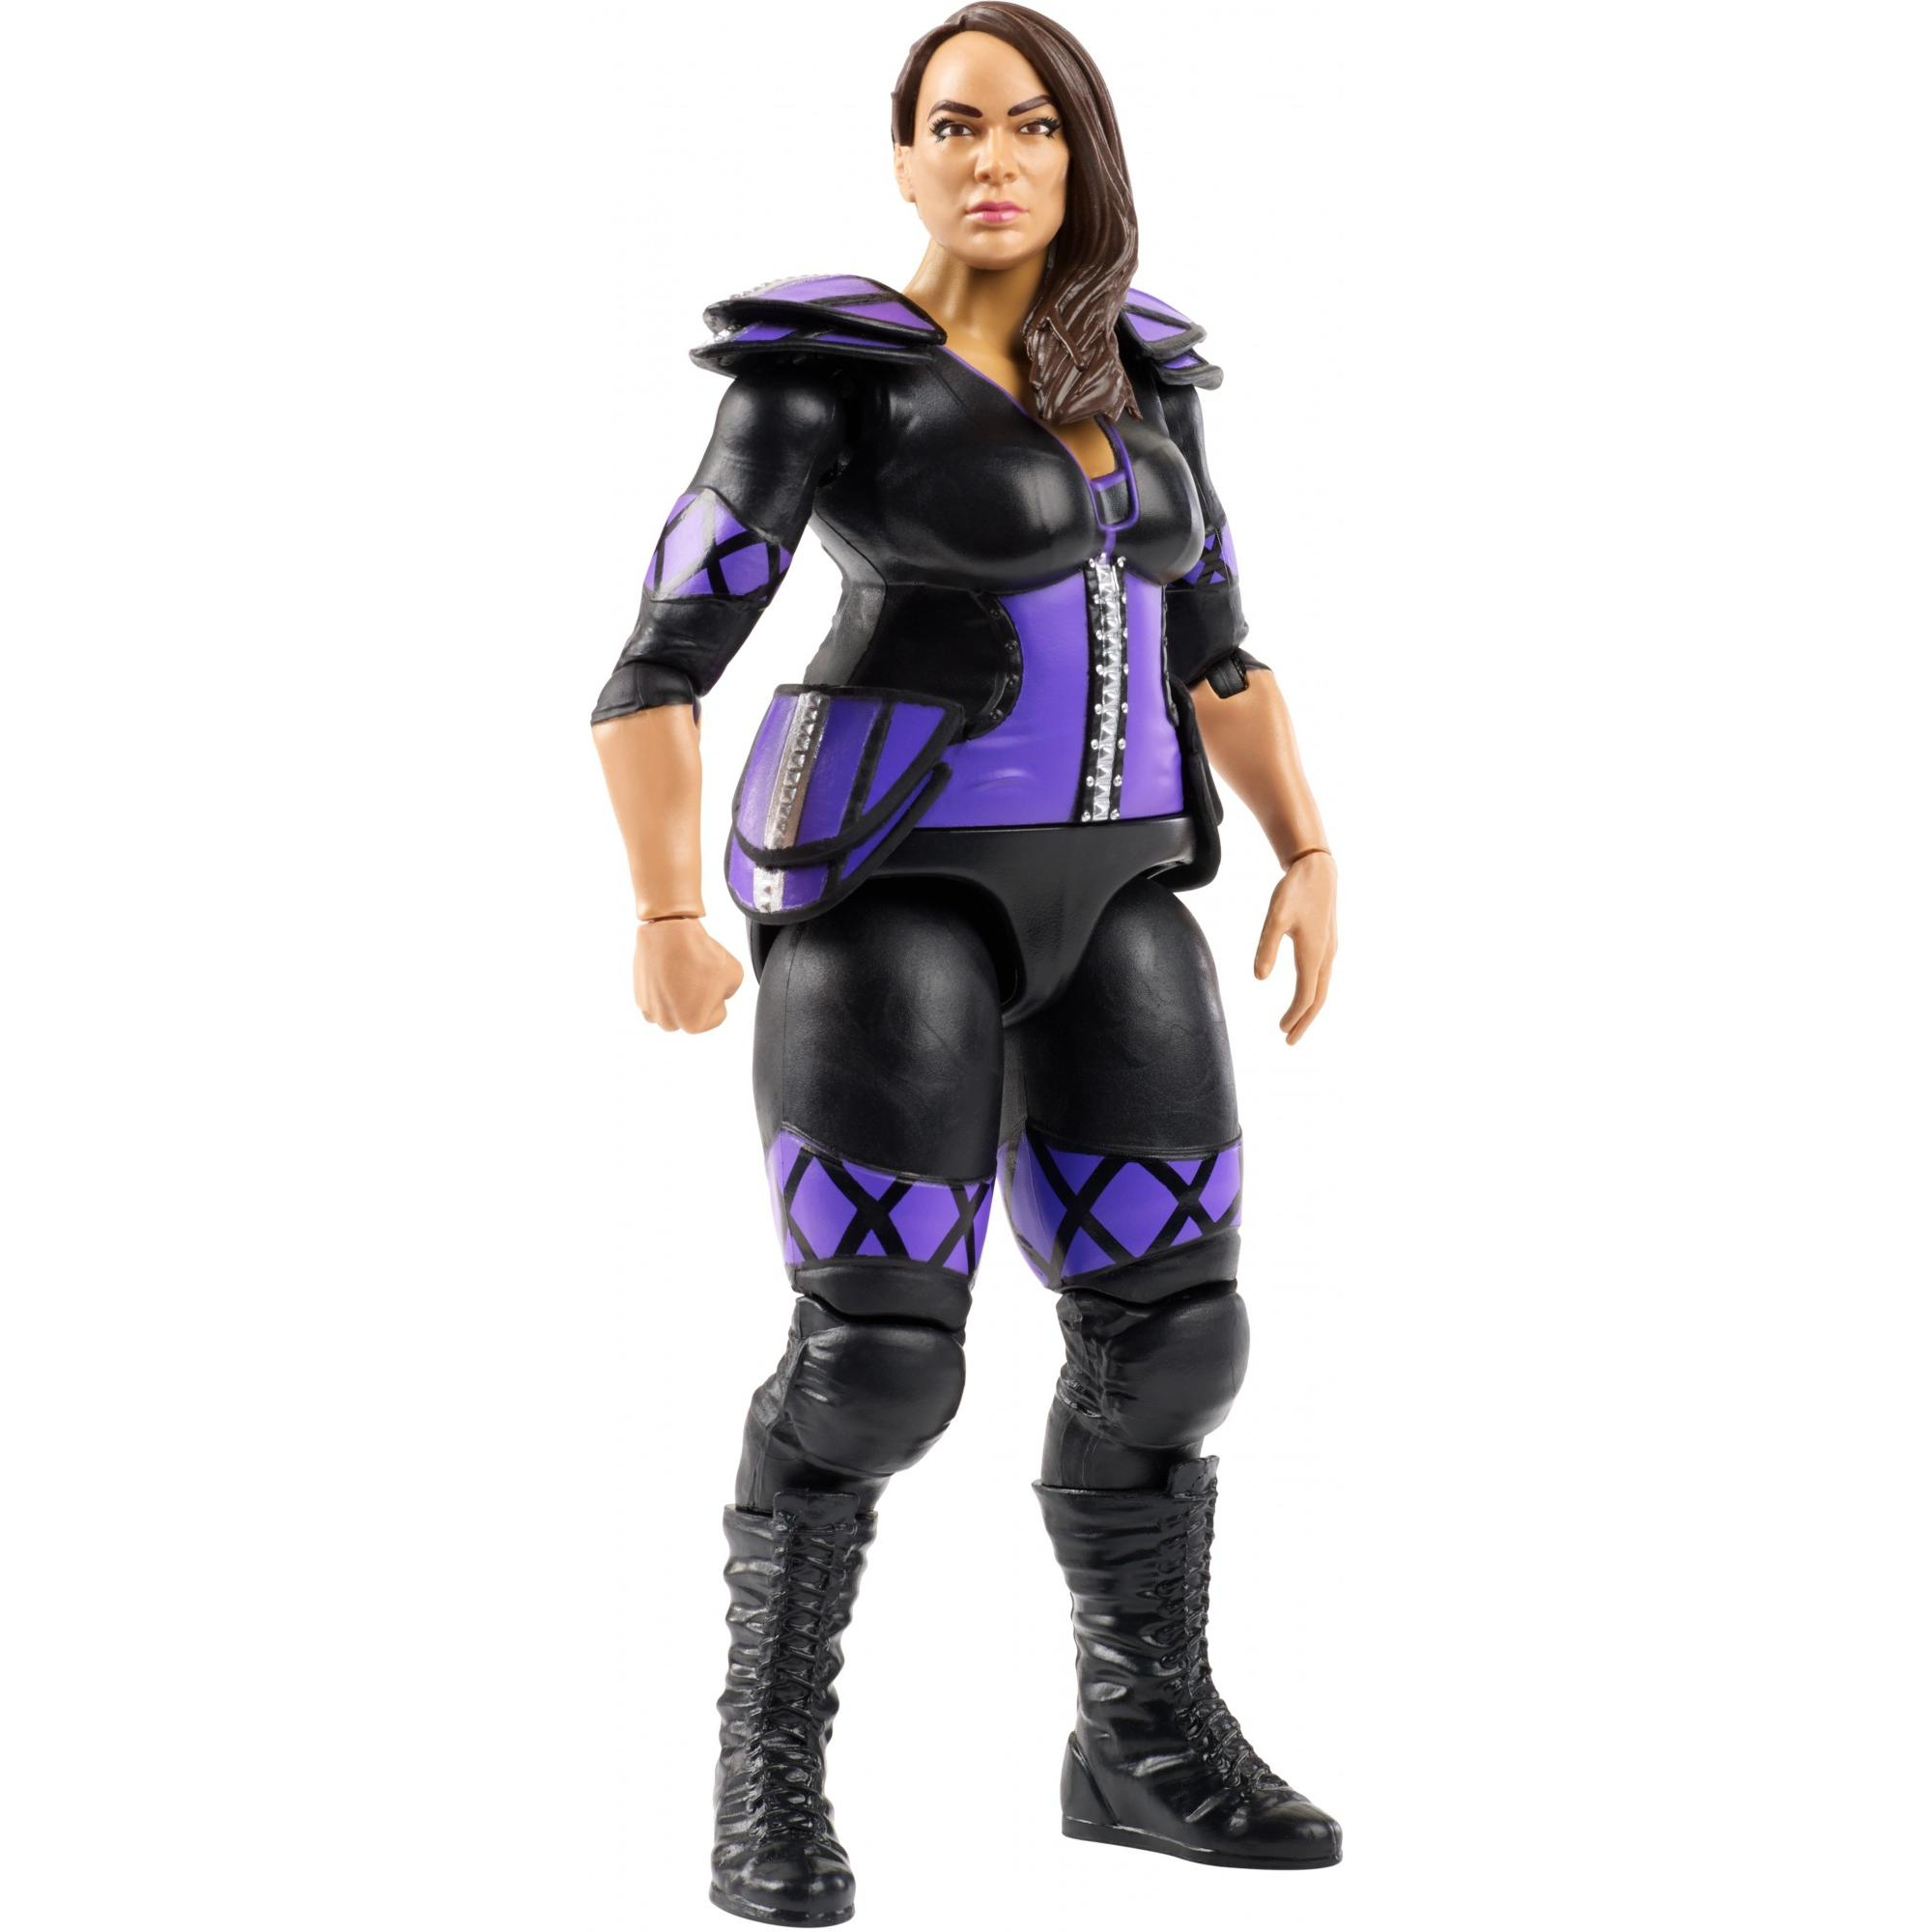 WWE Series # 79 Nia Jax 6-inch Scale Action Figure